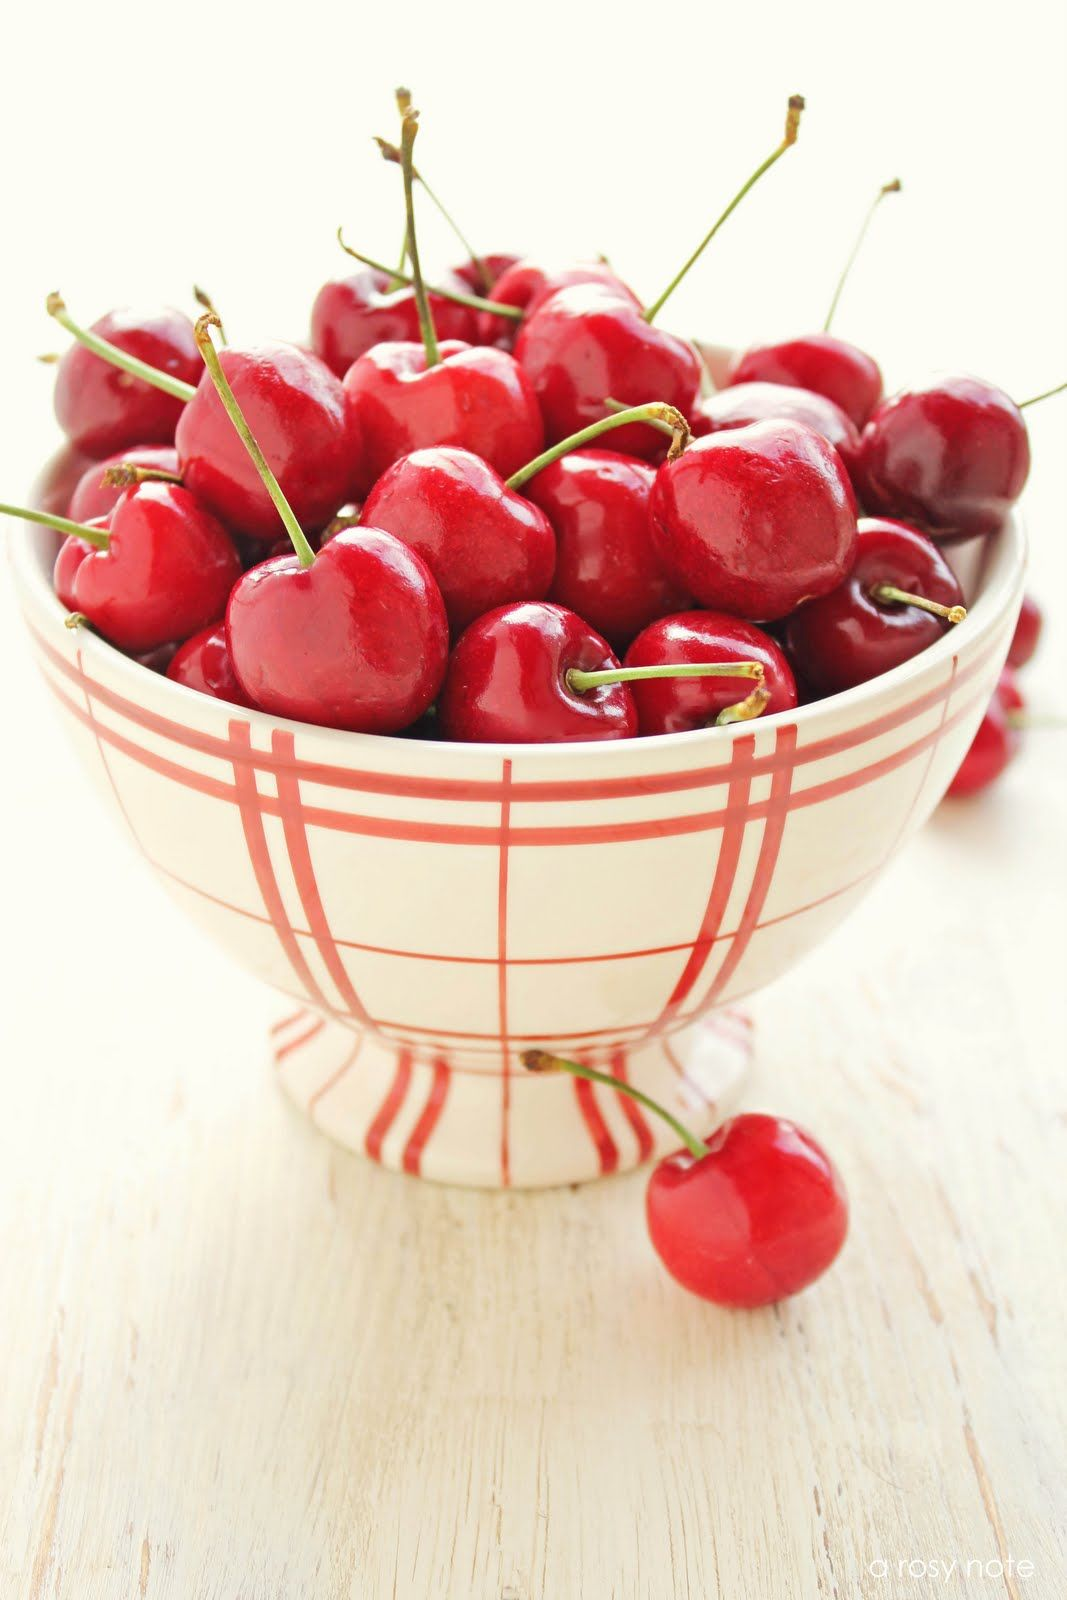 Christmas Cherries And Snowflakes Fruit Fruits And Veggies Cherry